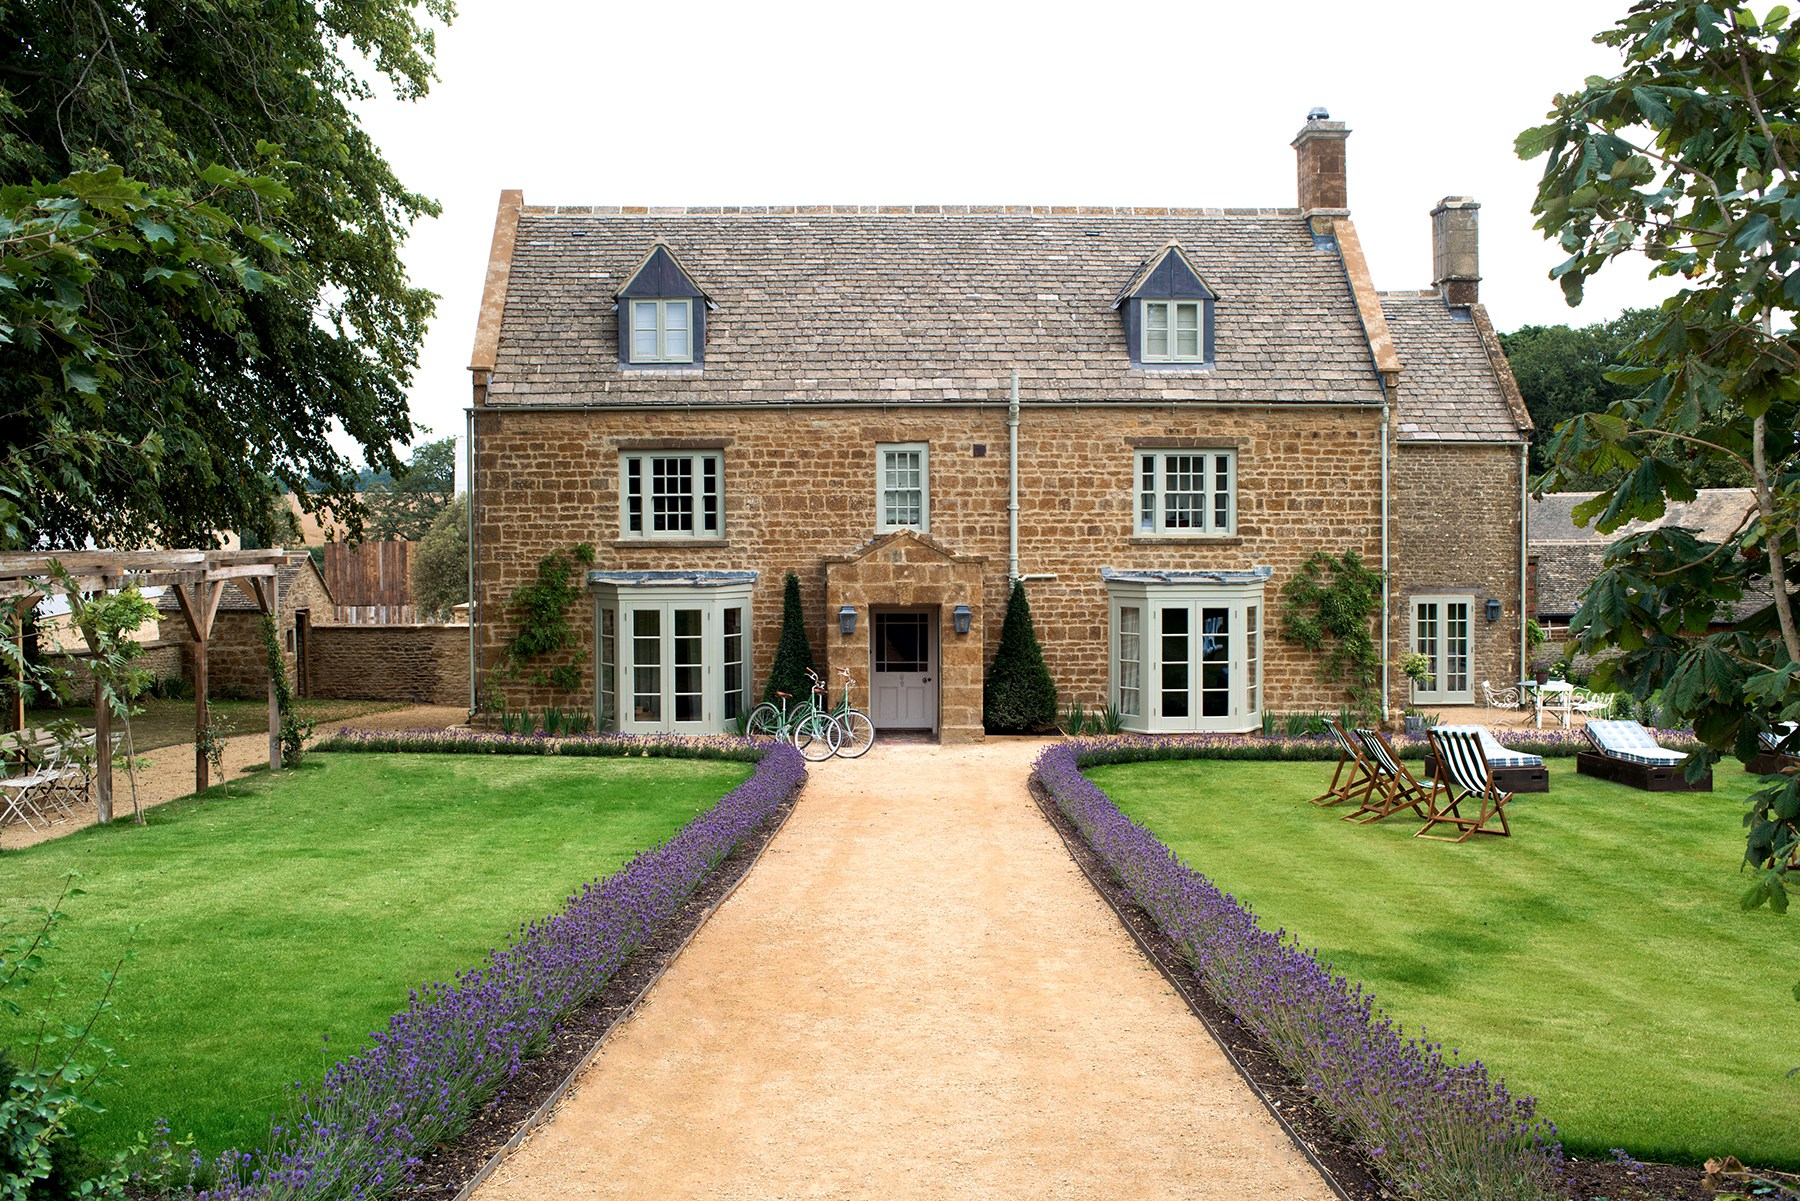 soho-house-farmhouse-2016-boyd-hotel-oxfordshire-5